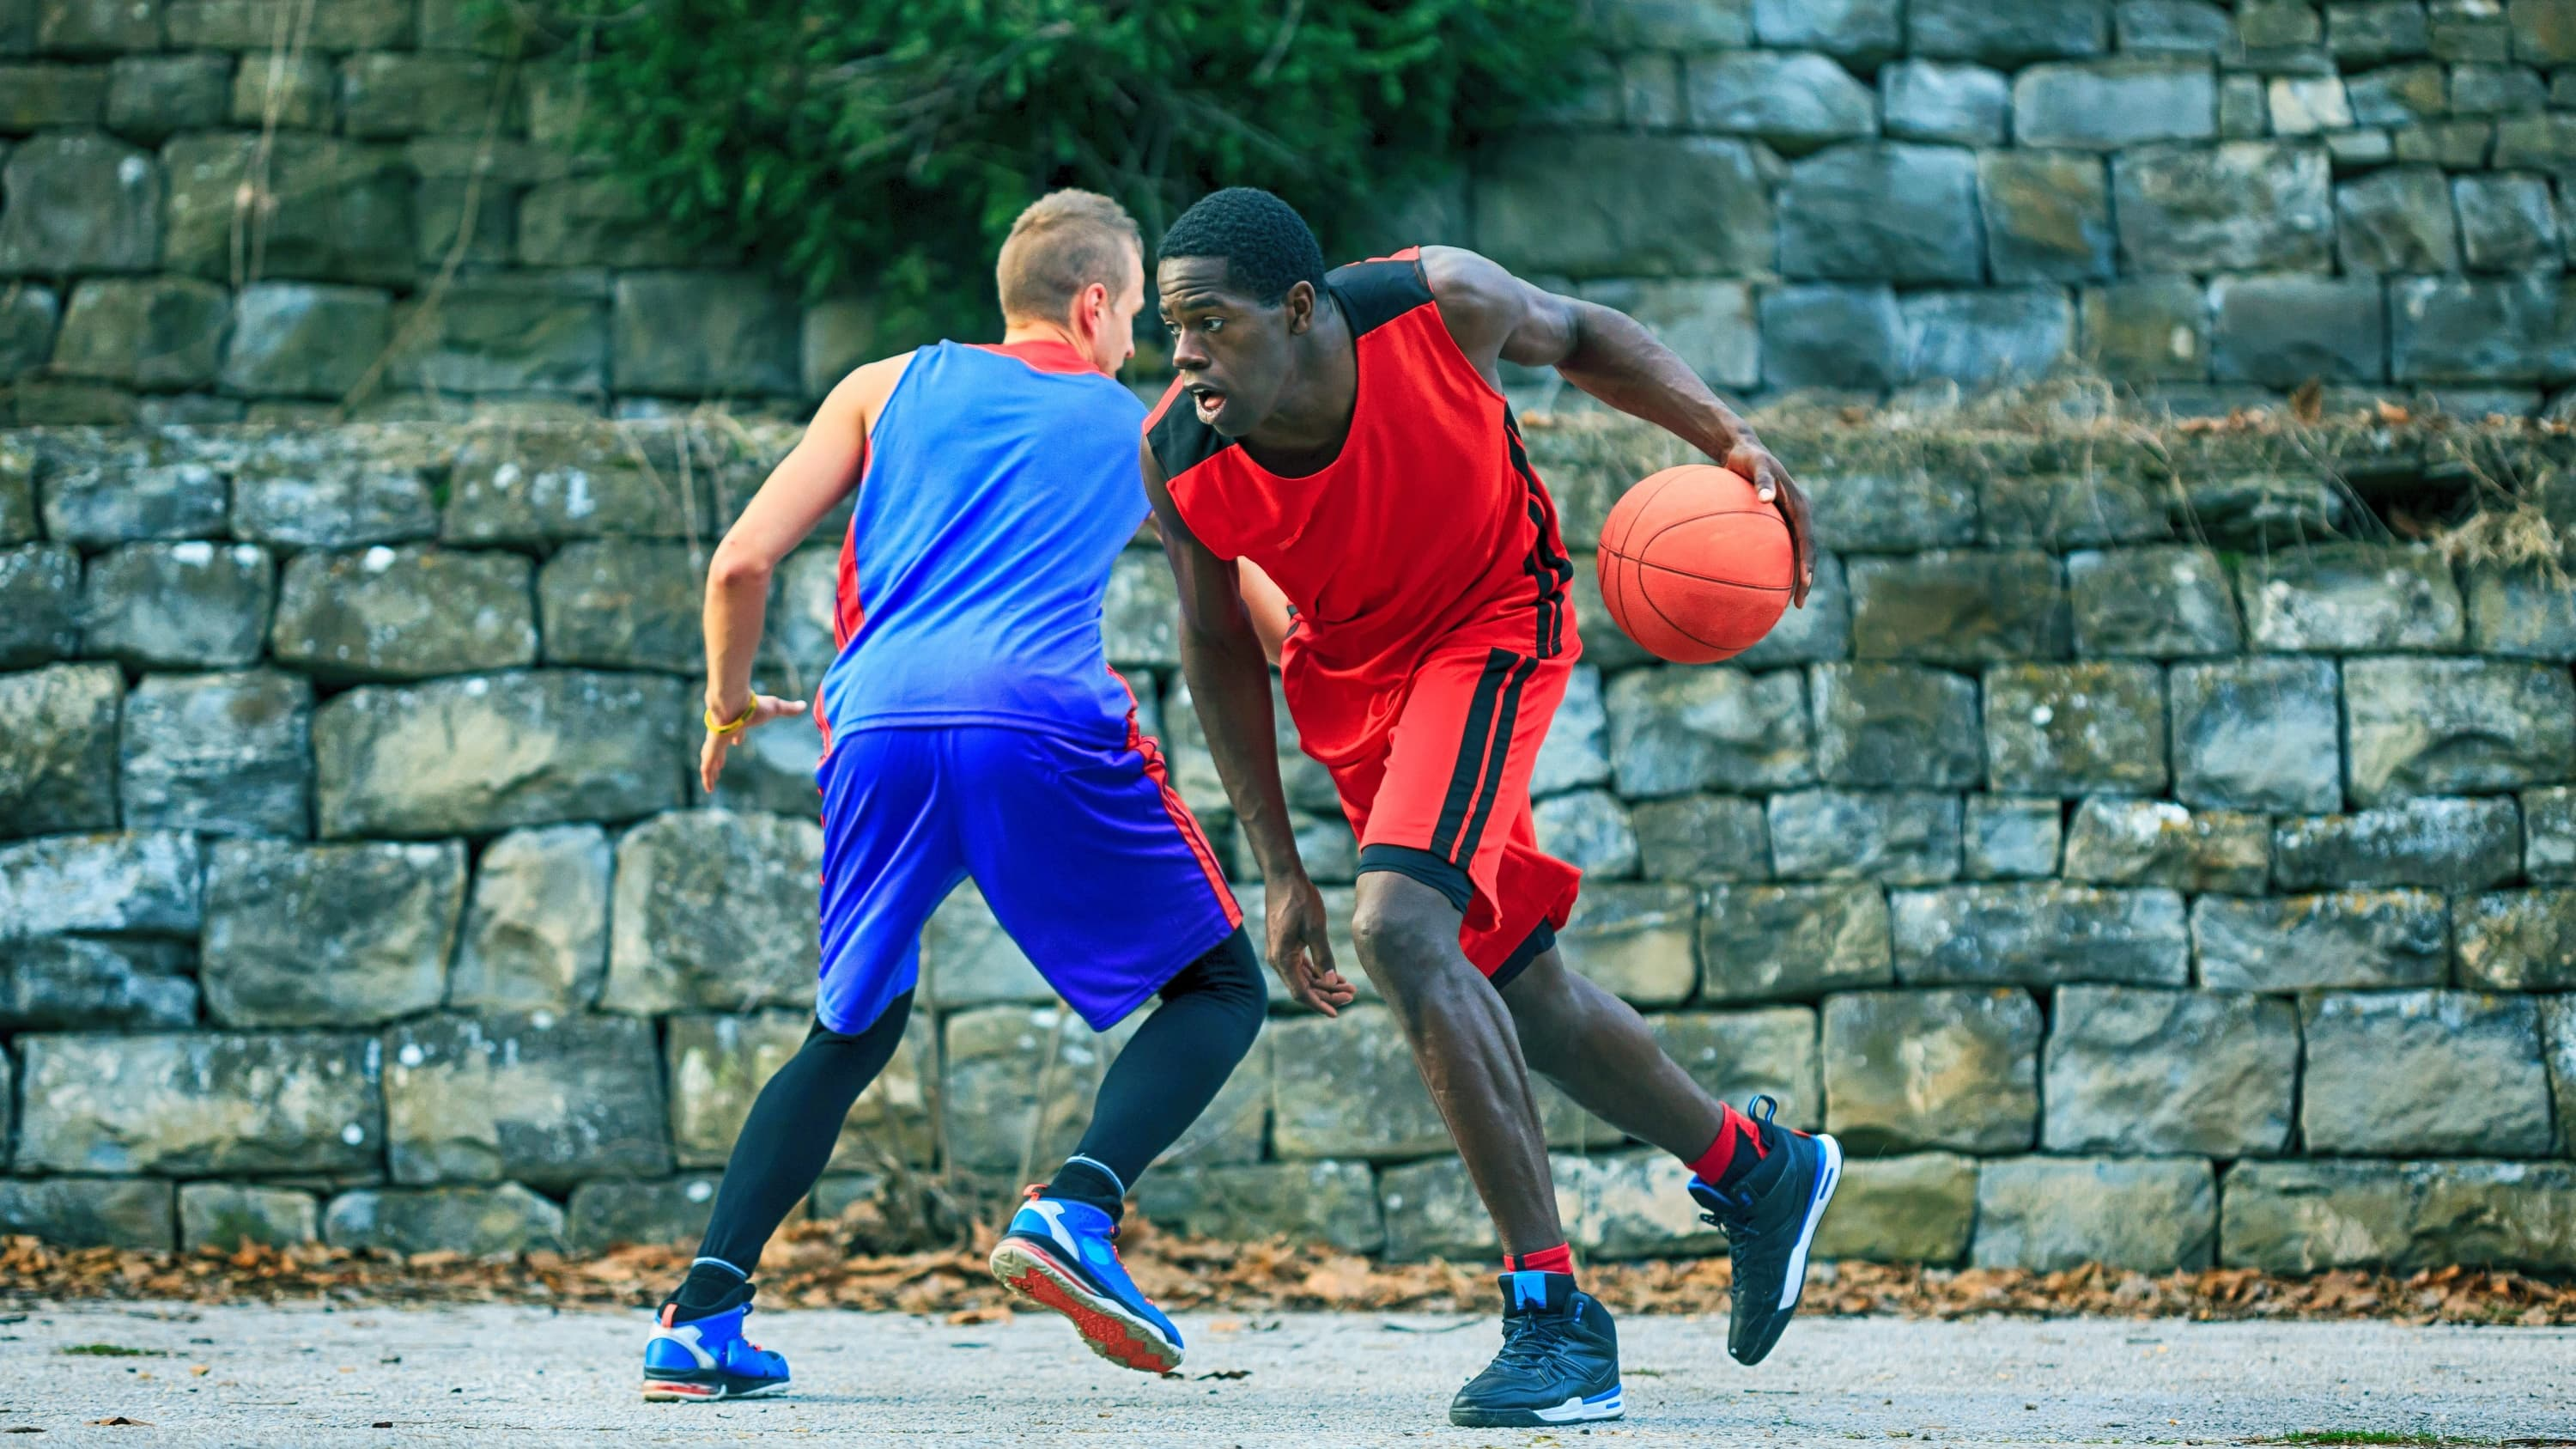 Two young people play basketball in a park.